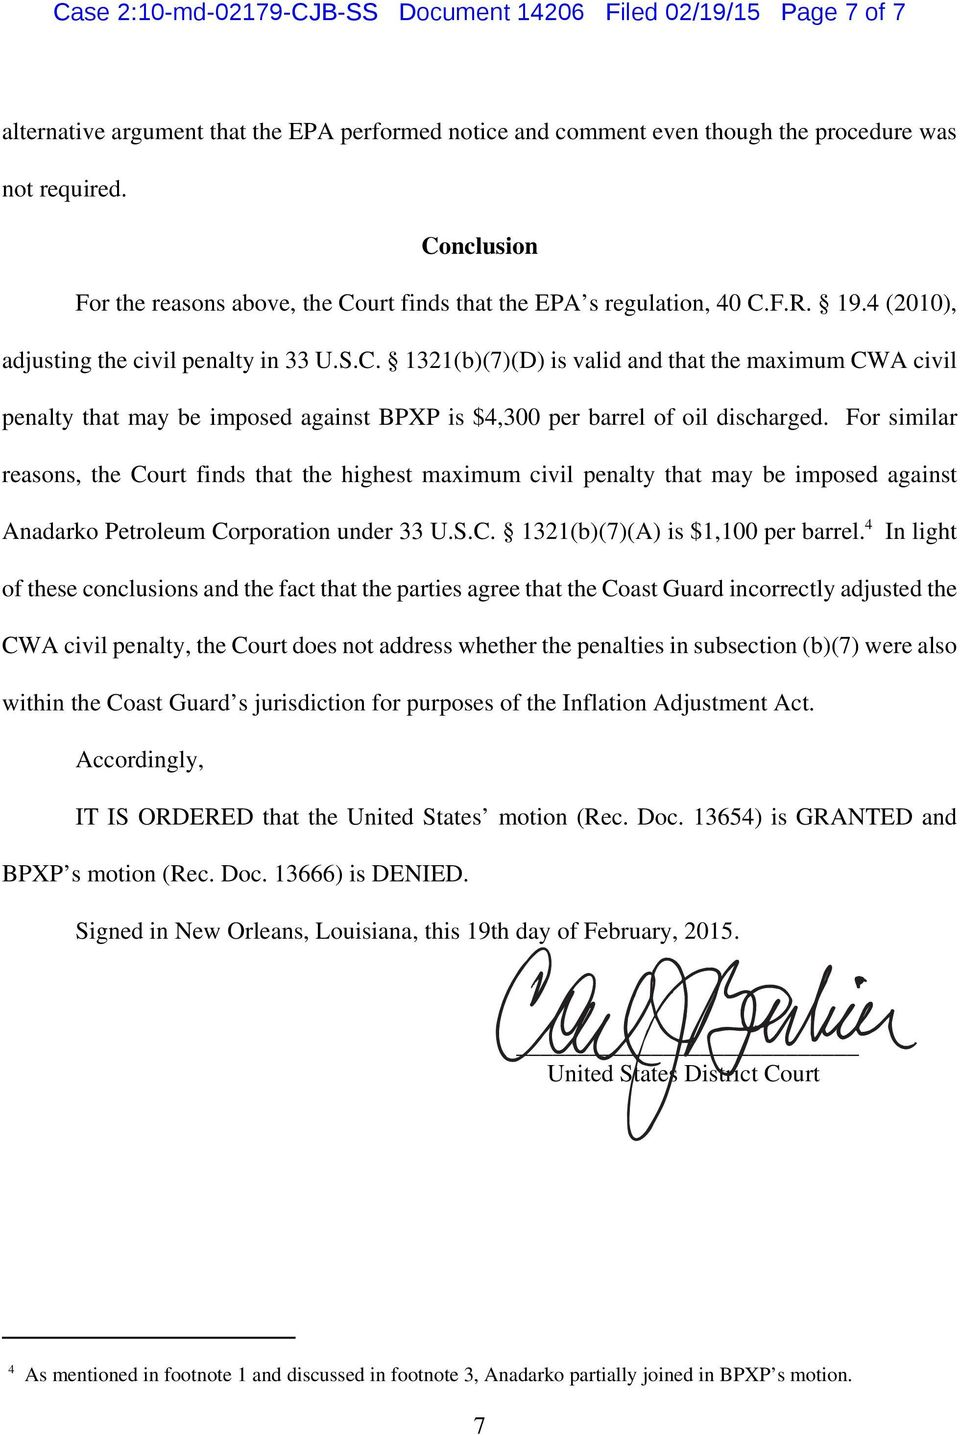 For similar reasons, the Court finds that the highest maximum civil penalty that may be imposed against Anadarko Petroleum Corporation under 33 U.S.C. 1321(b)(7)(A) is $1,100 per barrel.